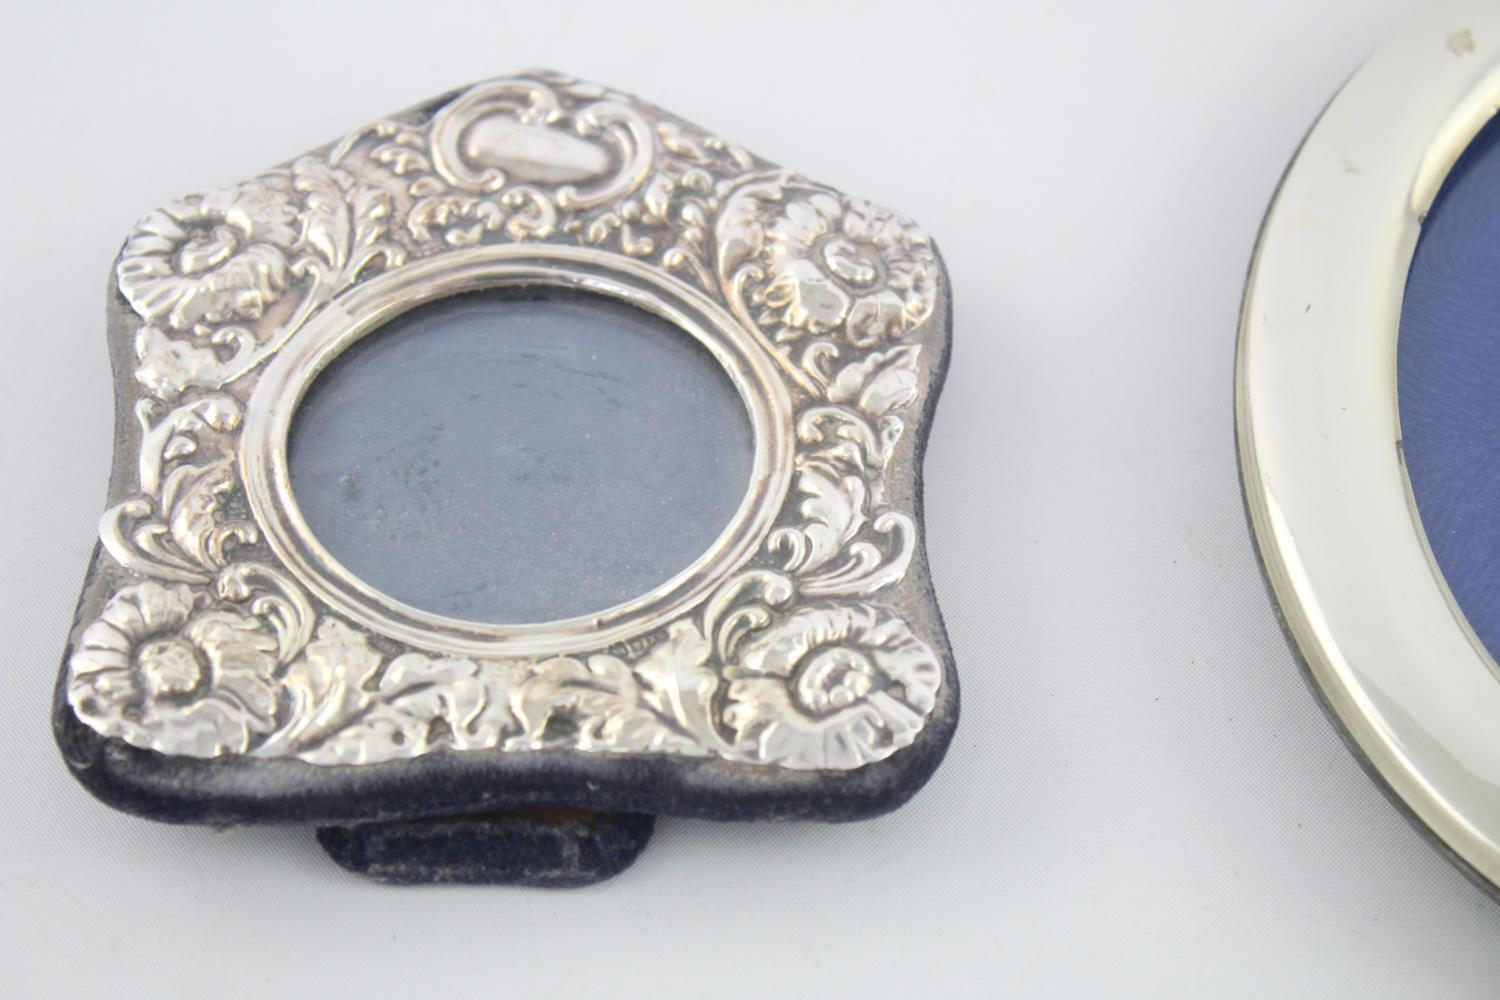 4 x Antique / Vintage Hallmarked .925 STERLING SILVER Photograph Frames (394g) - Image 5 of 5